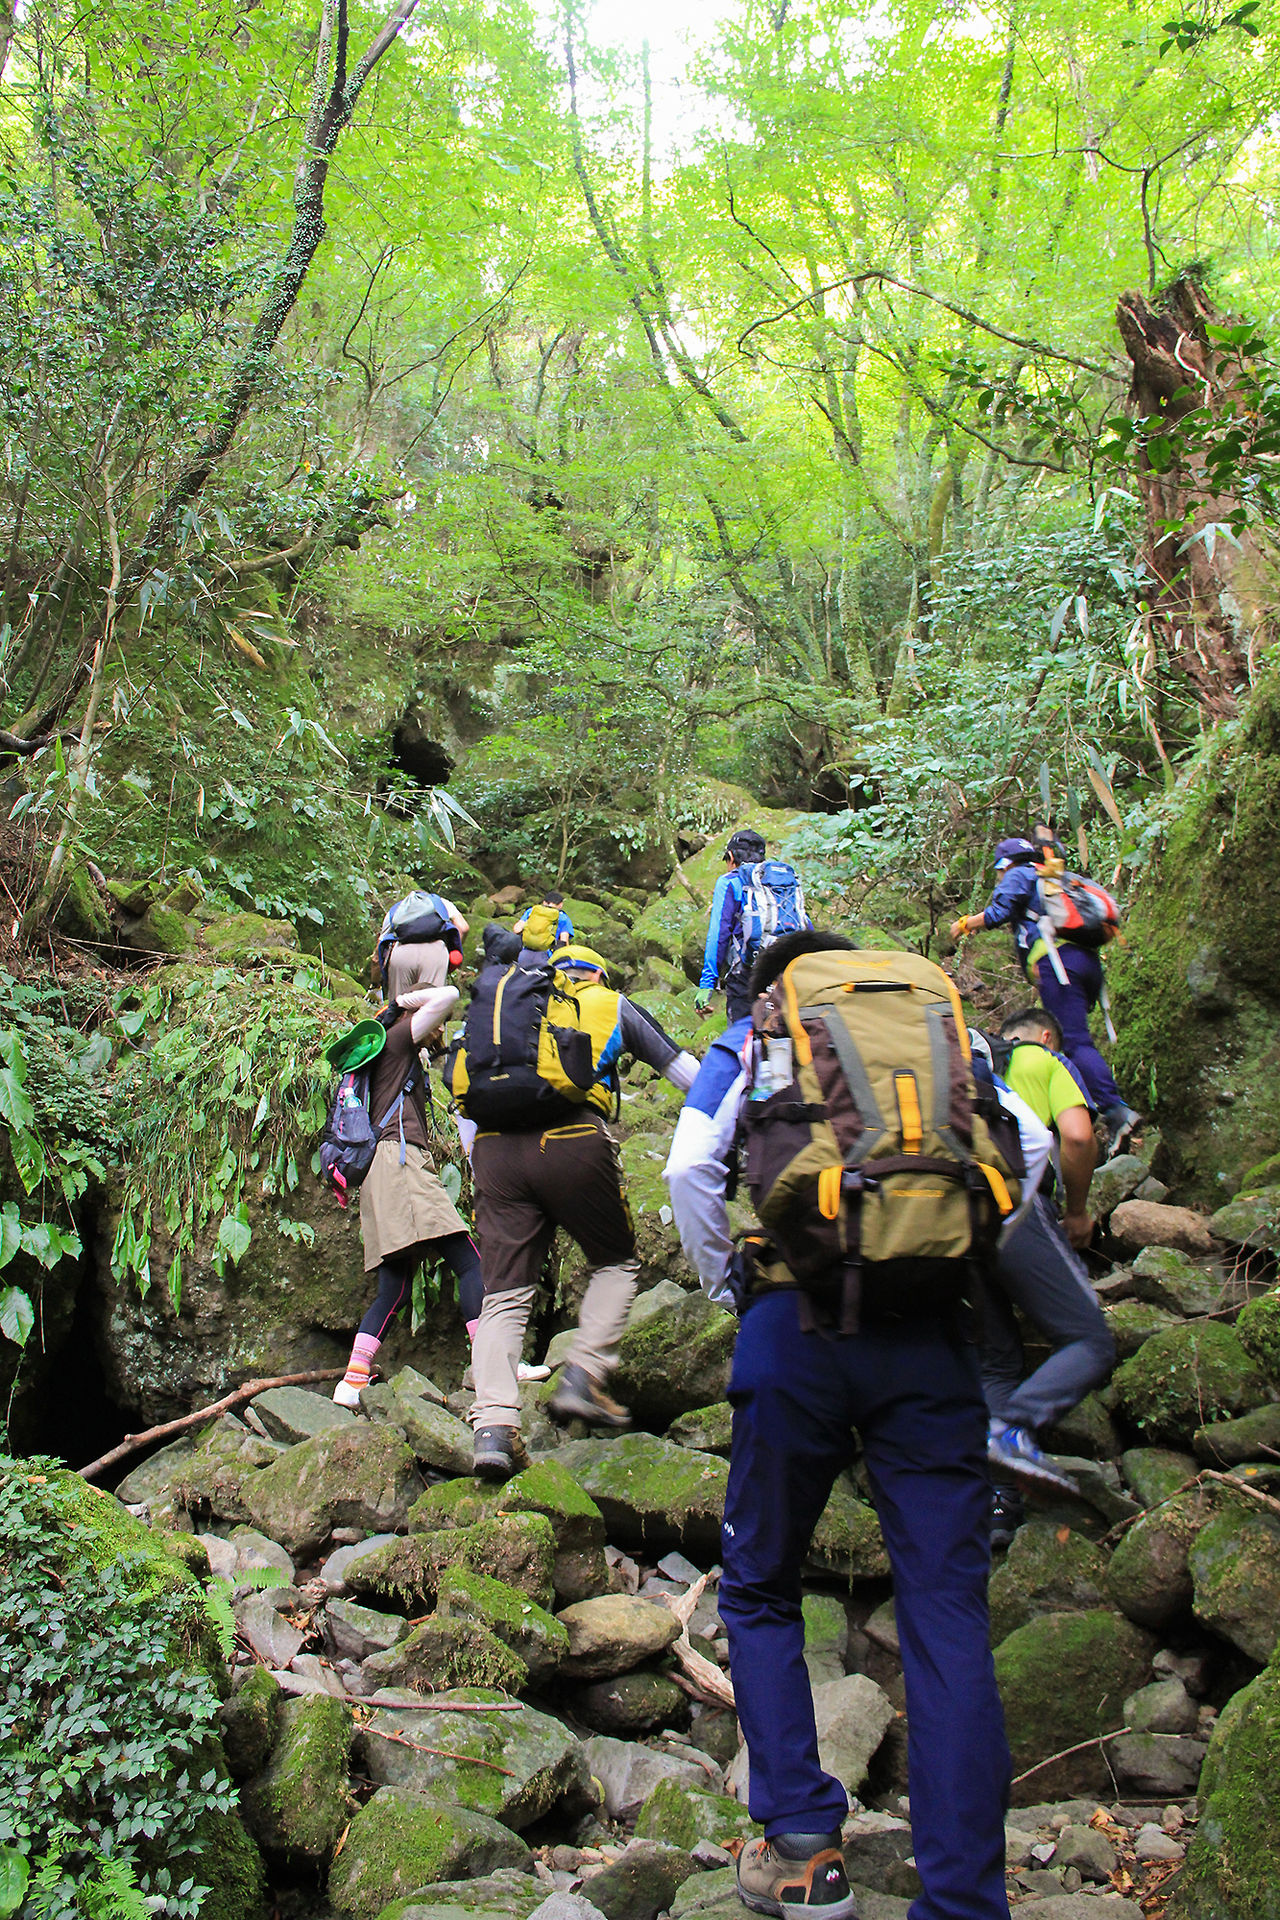 Hikers enter a mysterious realm of virgin forests and enormous moss-covered rocks.